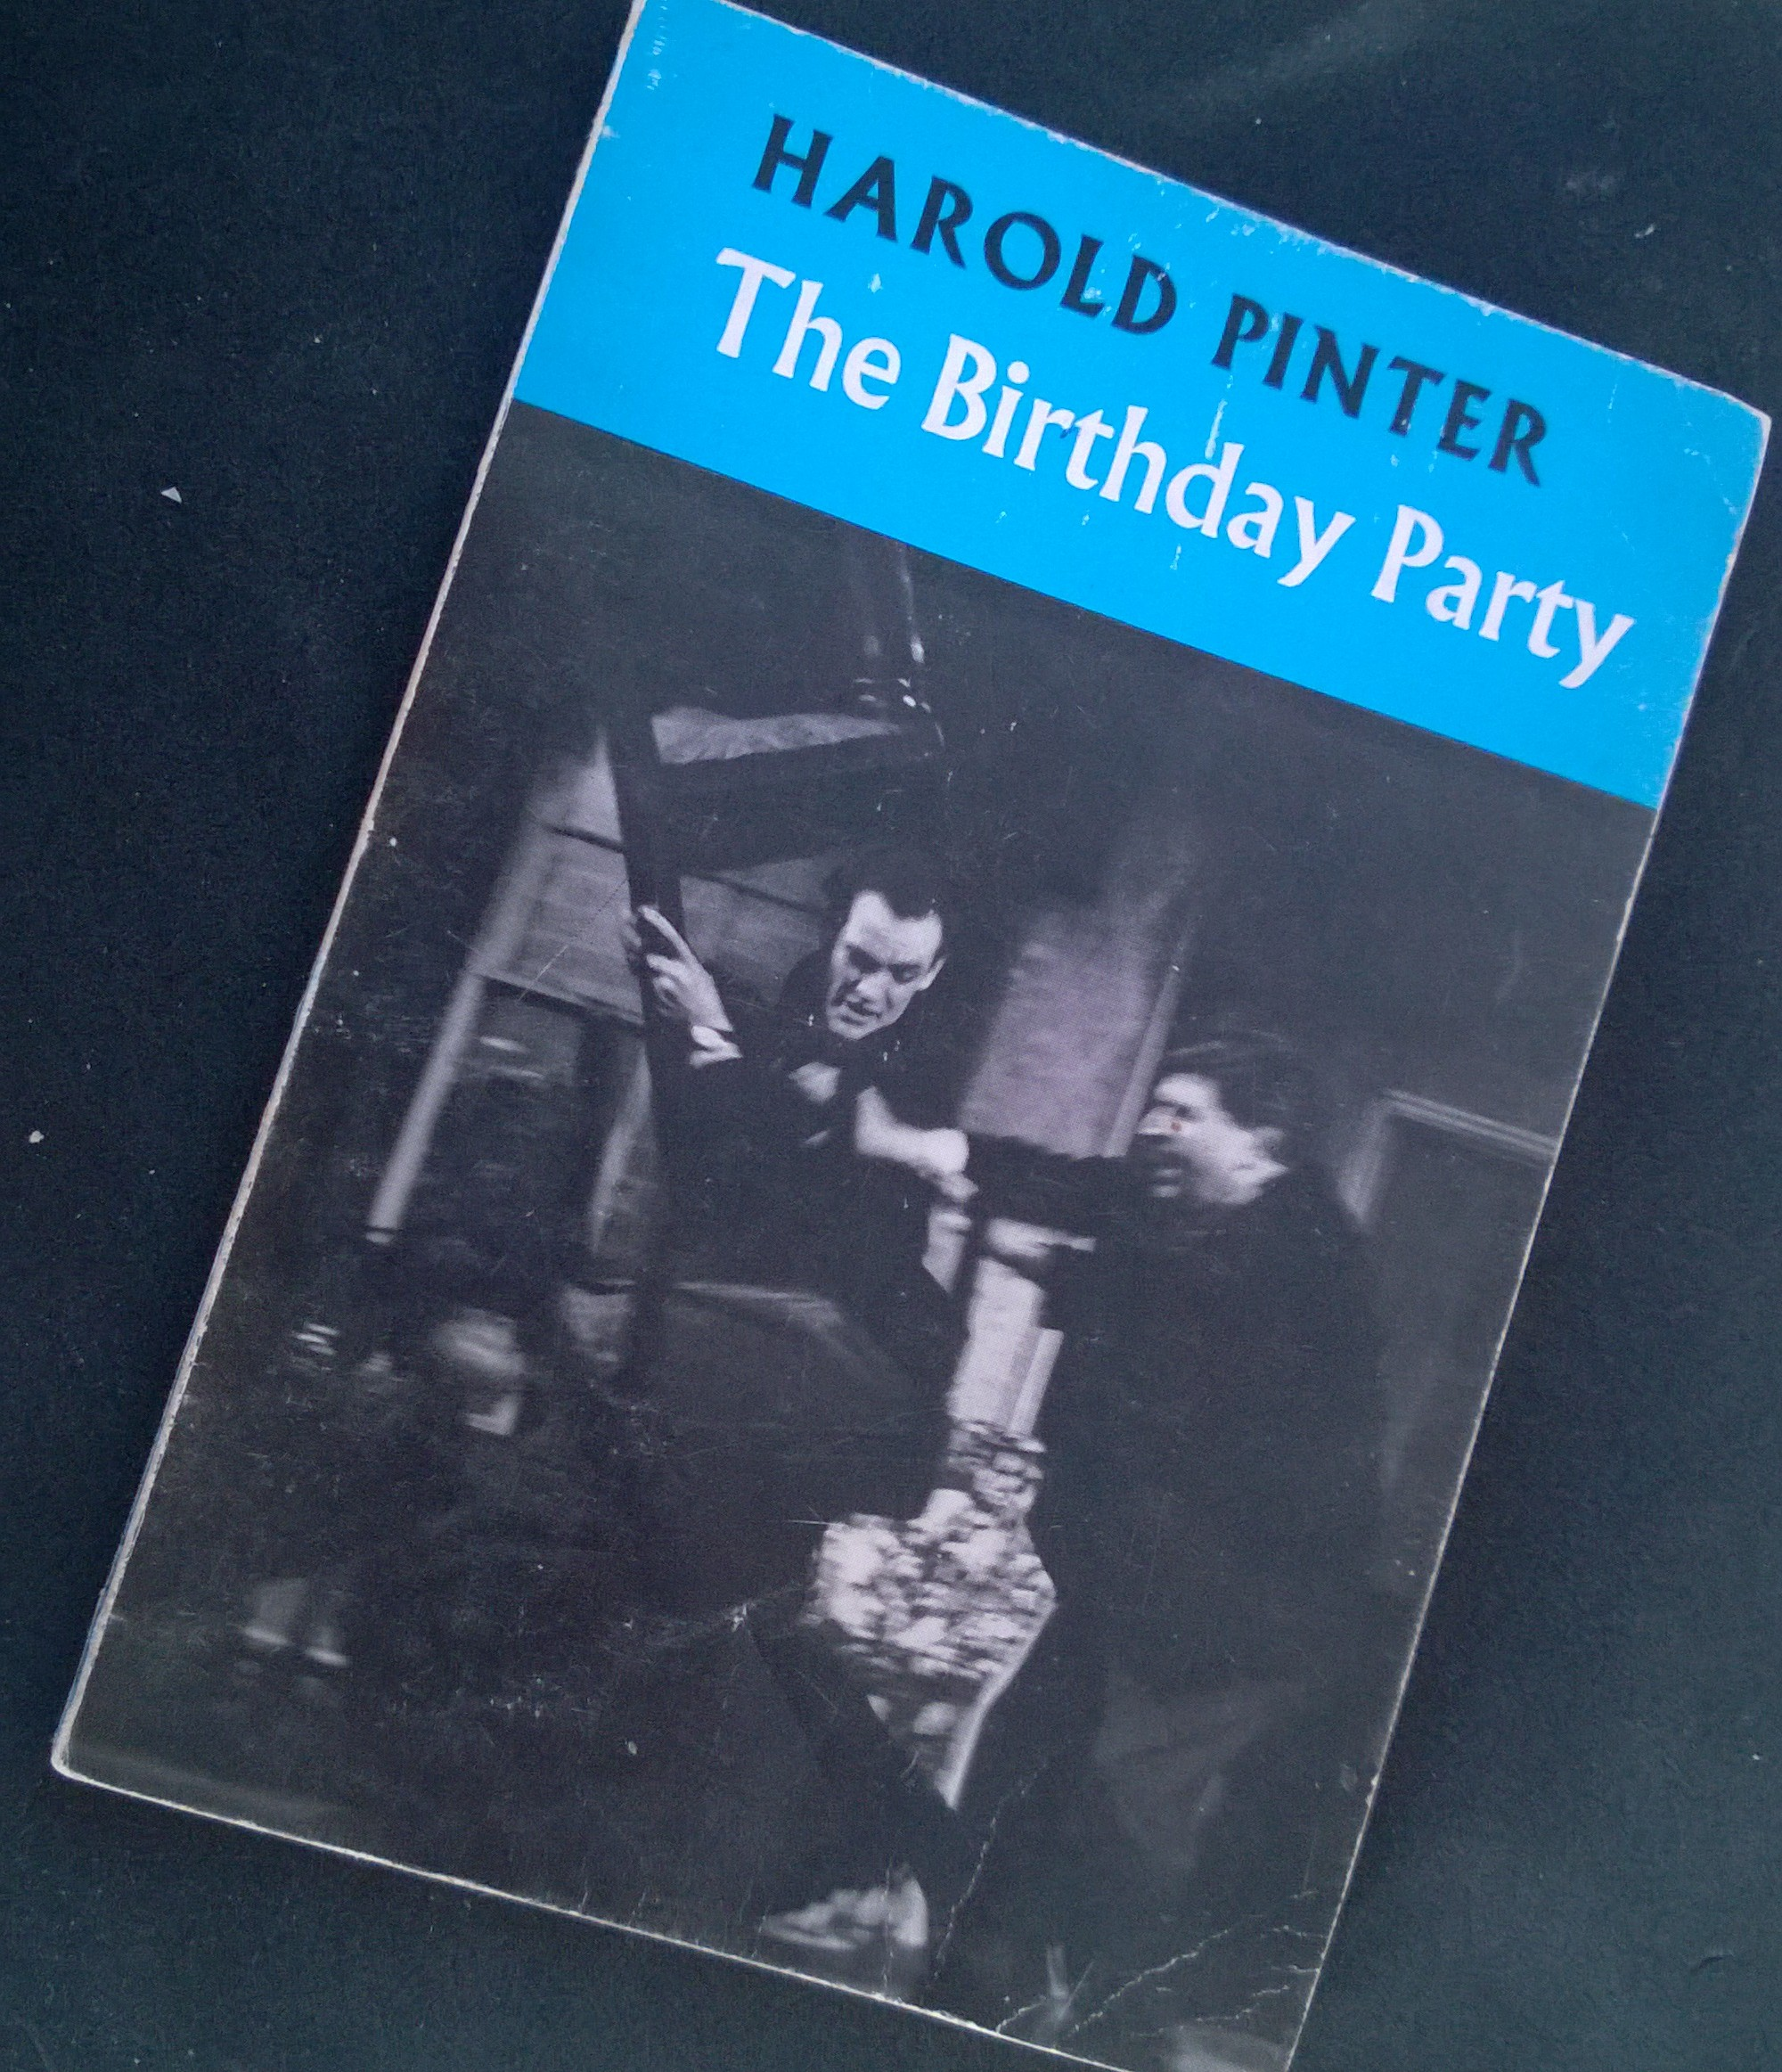 he Birthday Party , Harold Pinter, Paperback Edition, 1963